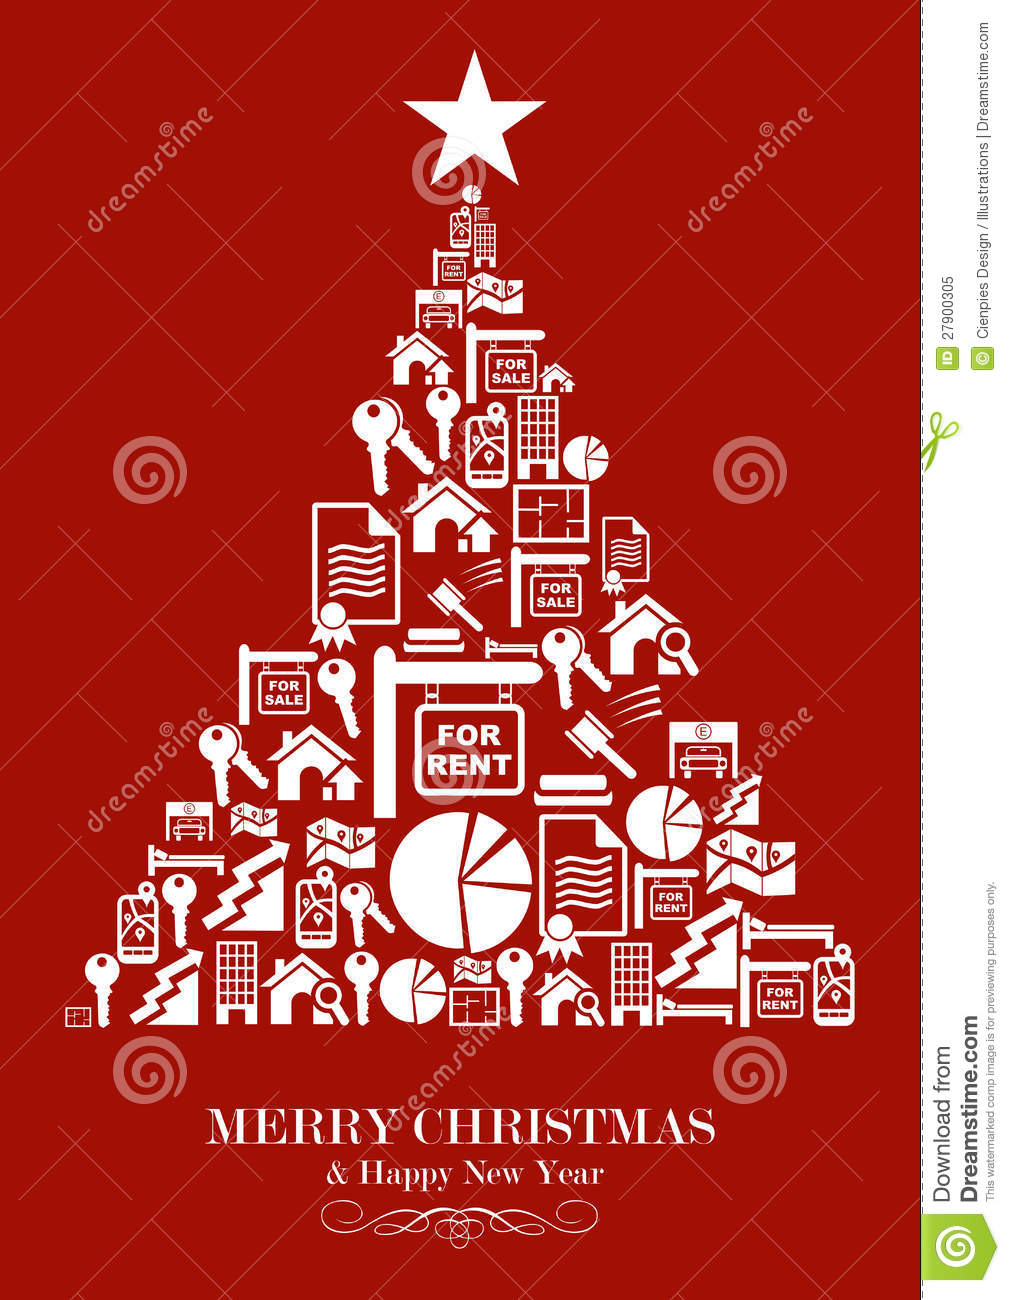 Real Estate Industry Christmas Tree Stock Vector - Illustration of ...